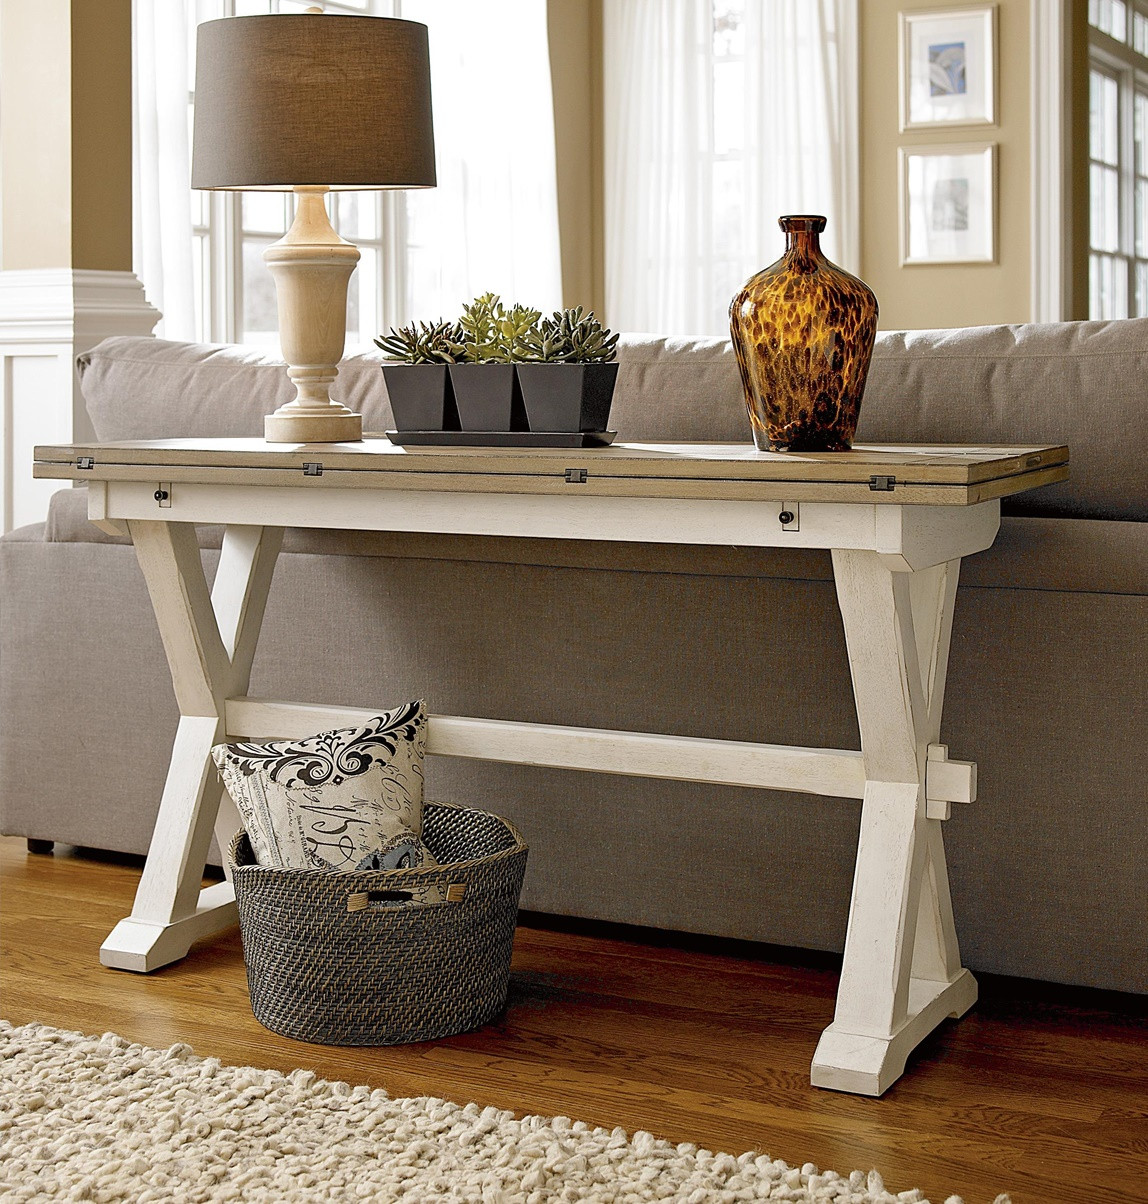 Kitchen Console Table